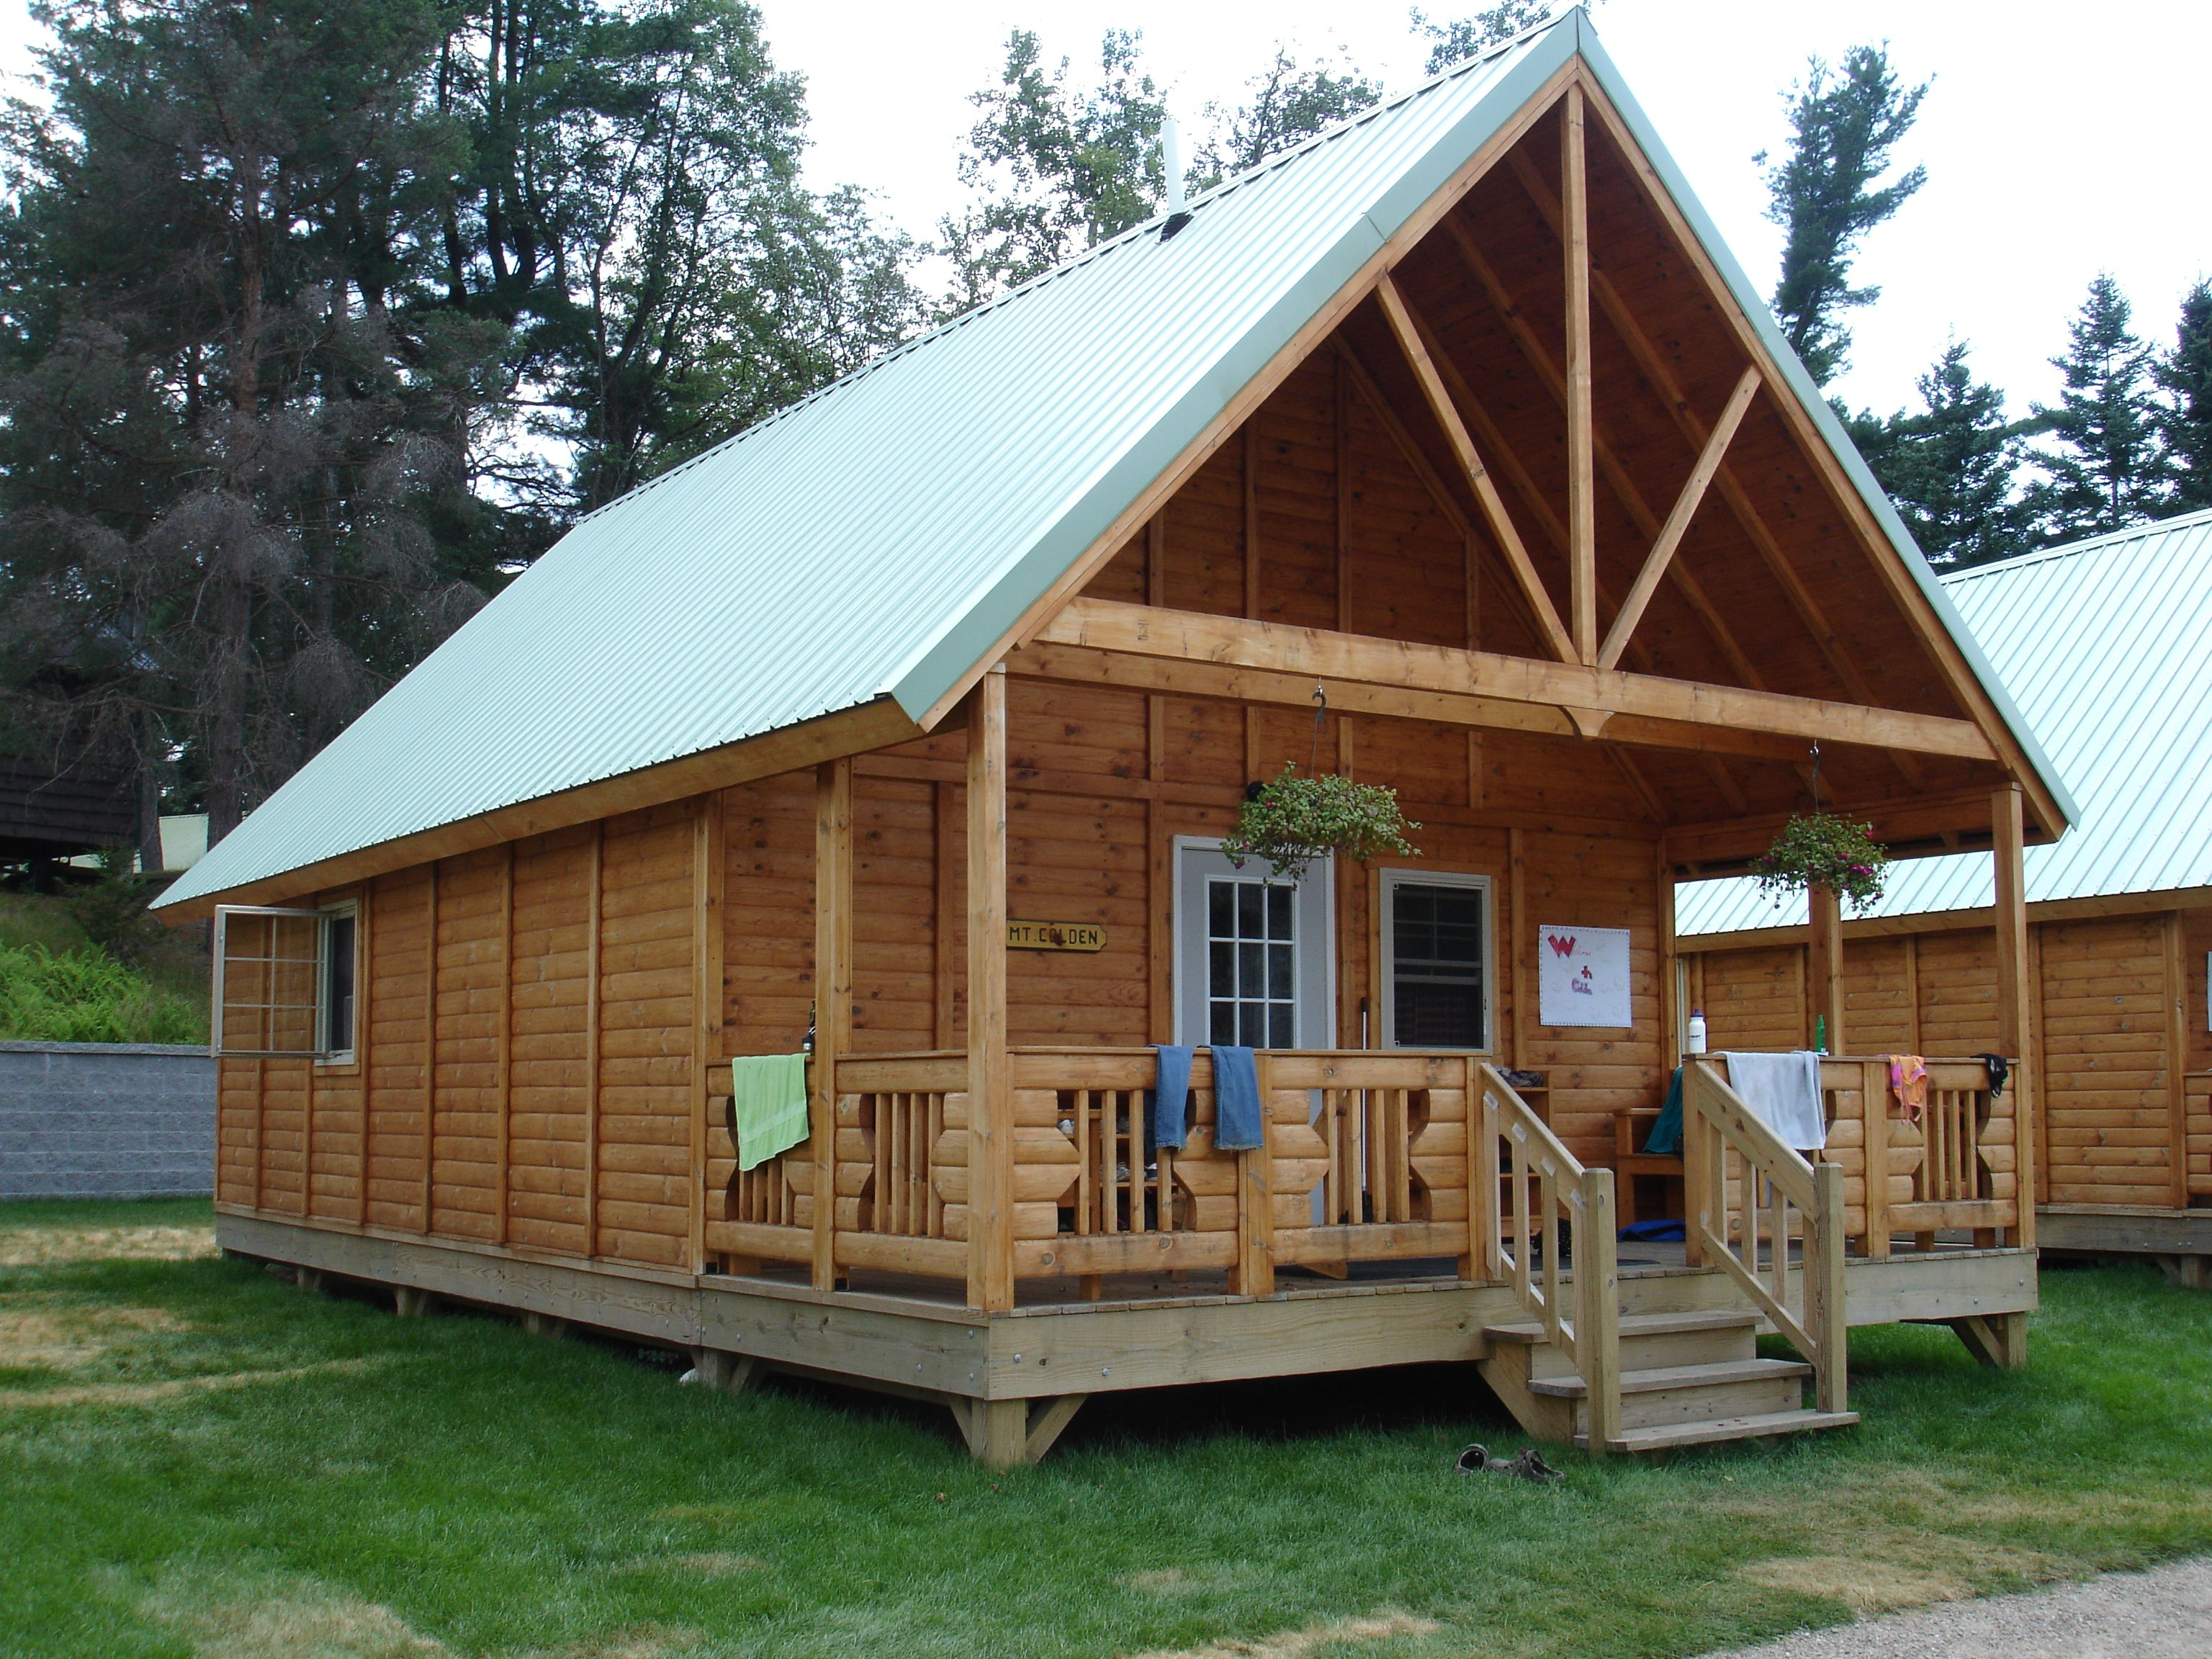 log mobile homes with lofts hunting cabins for sale modular small hunting cabins kits - Mini Log Cabin Kits